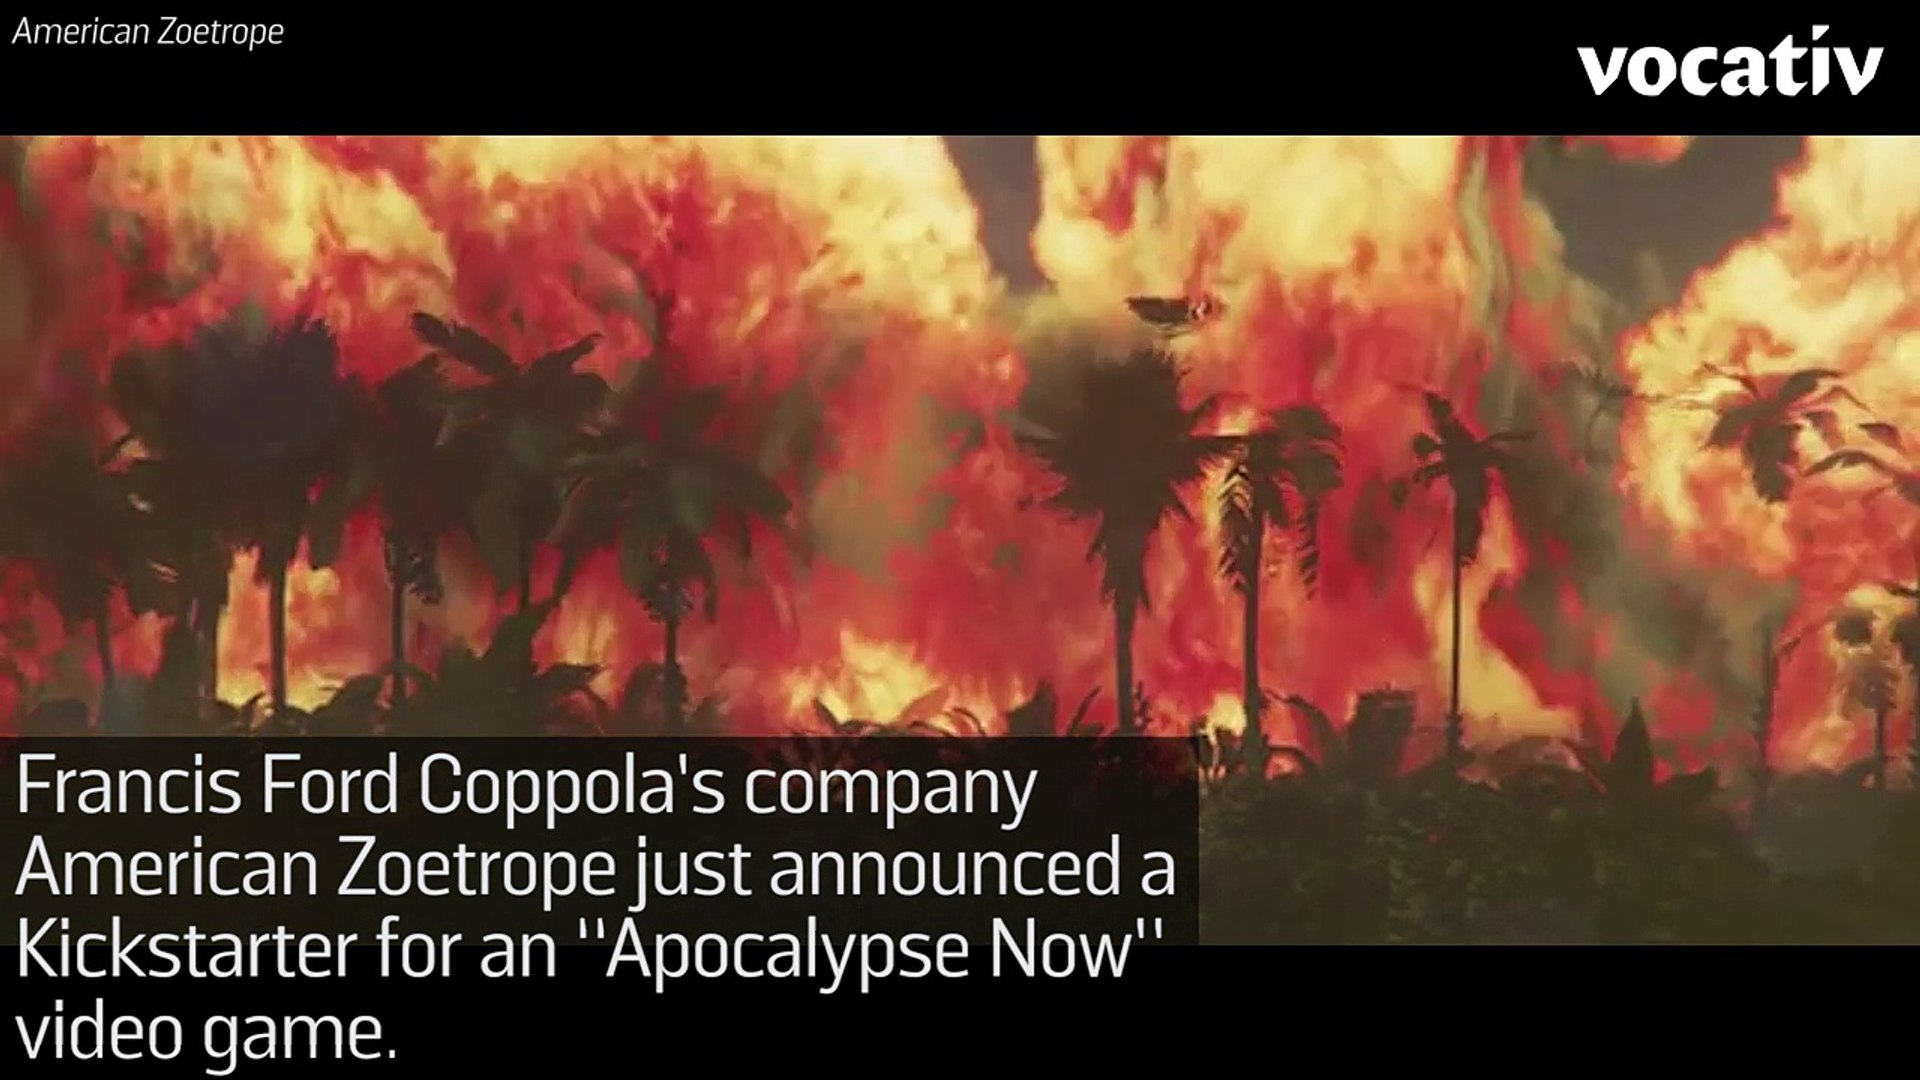 Francis Ford Coppola Crowdfunds 'Apocalypse Now' Video Game